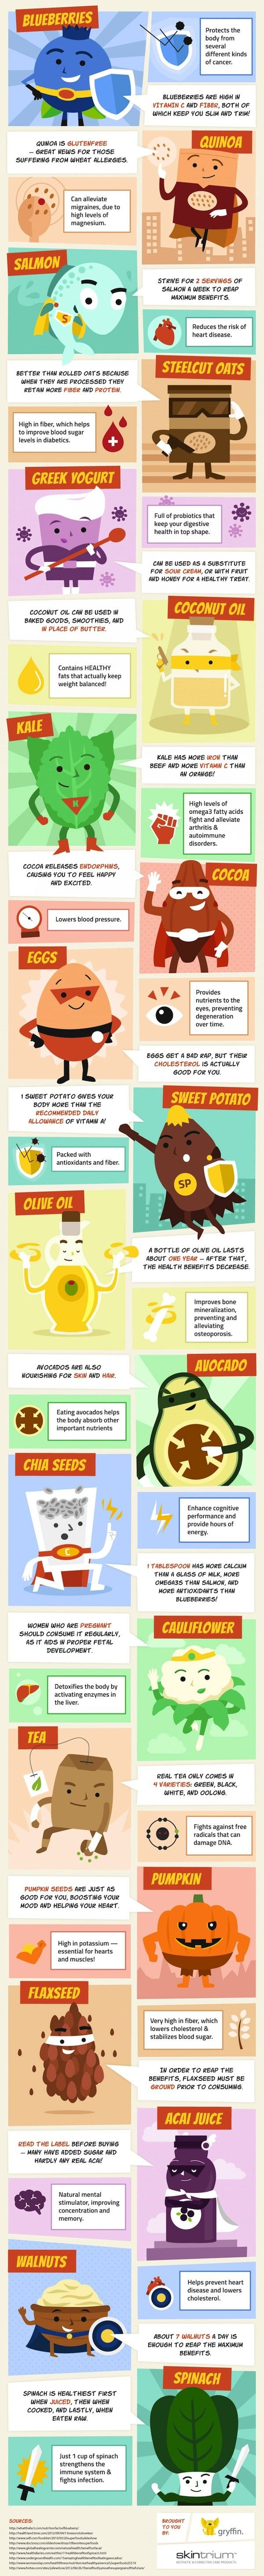 The Ultimate Guide To Superfoods (Infographic) - mindbodygreen.com